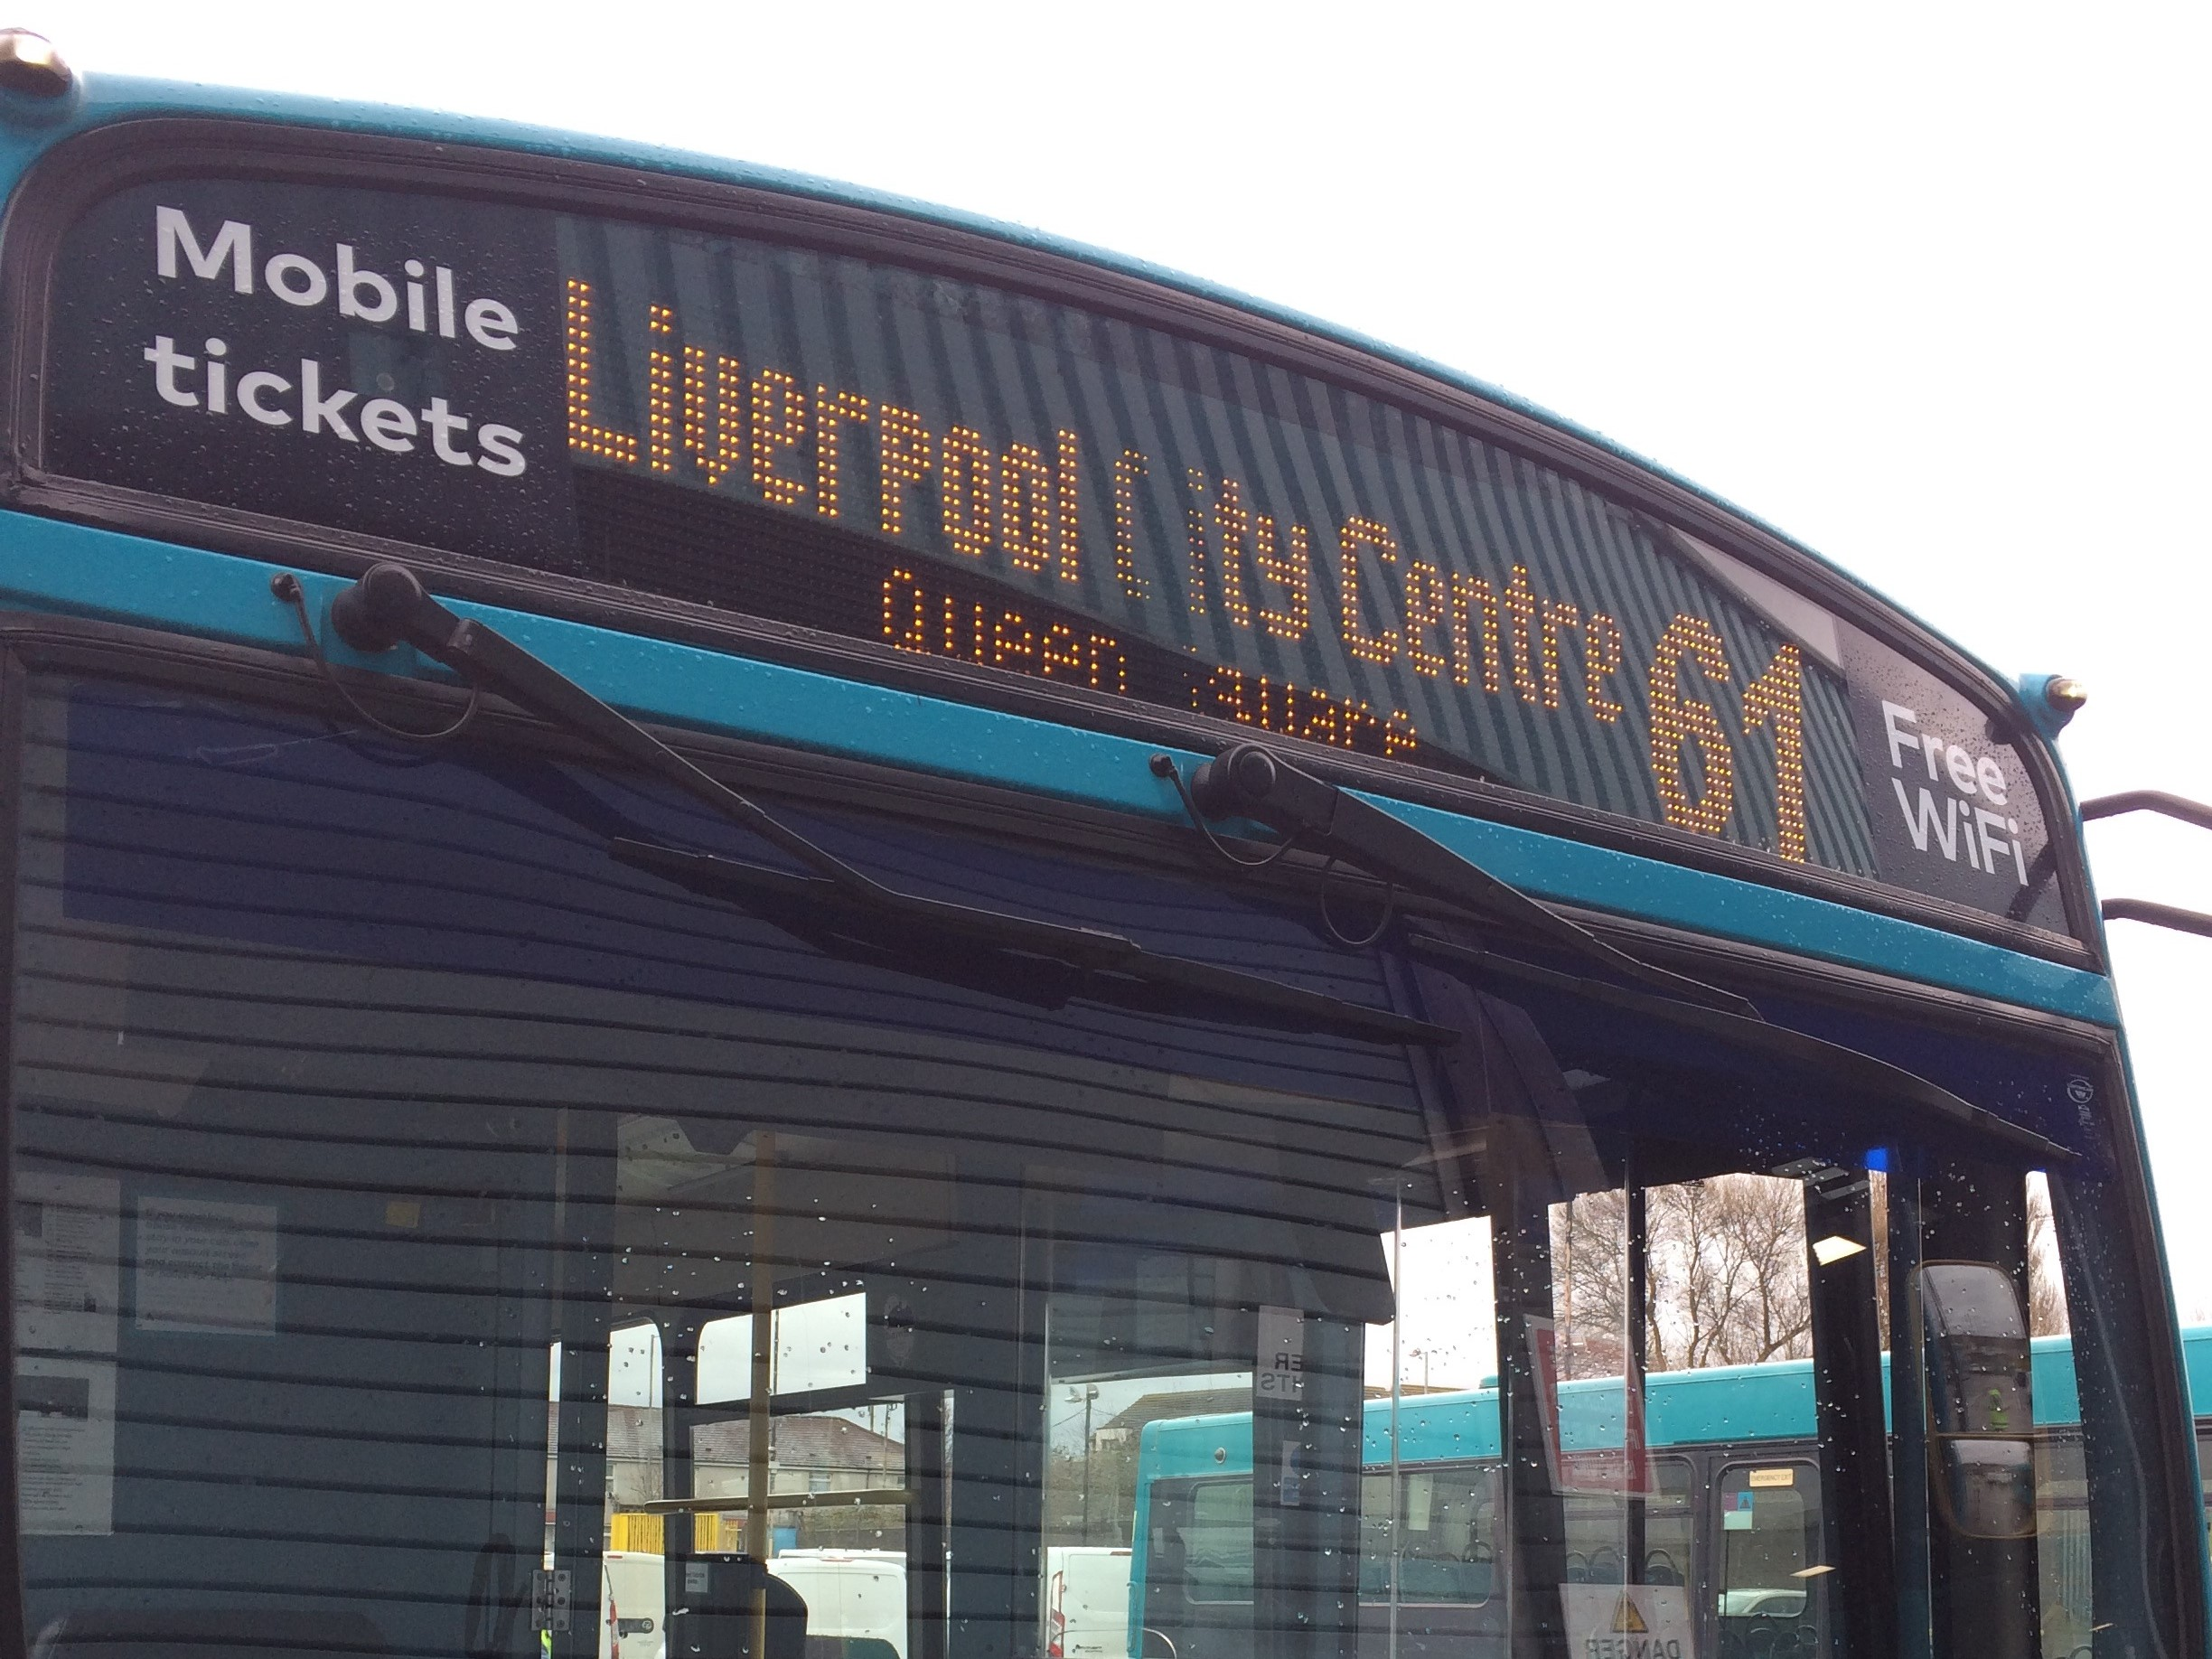 The Arriva 61 Halton to Liverpool bus service